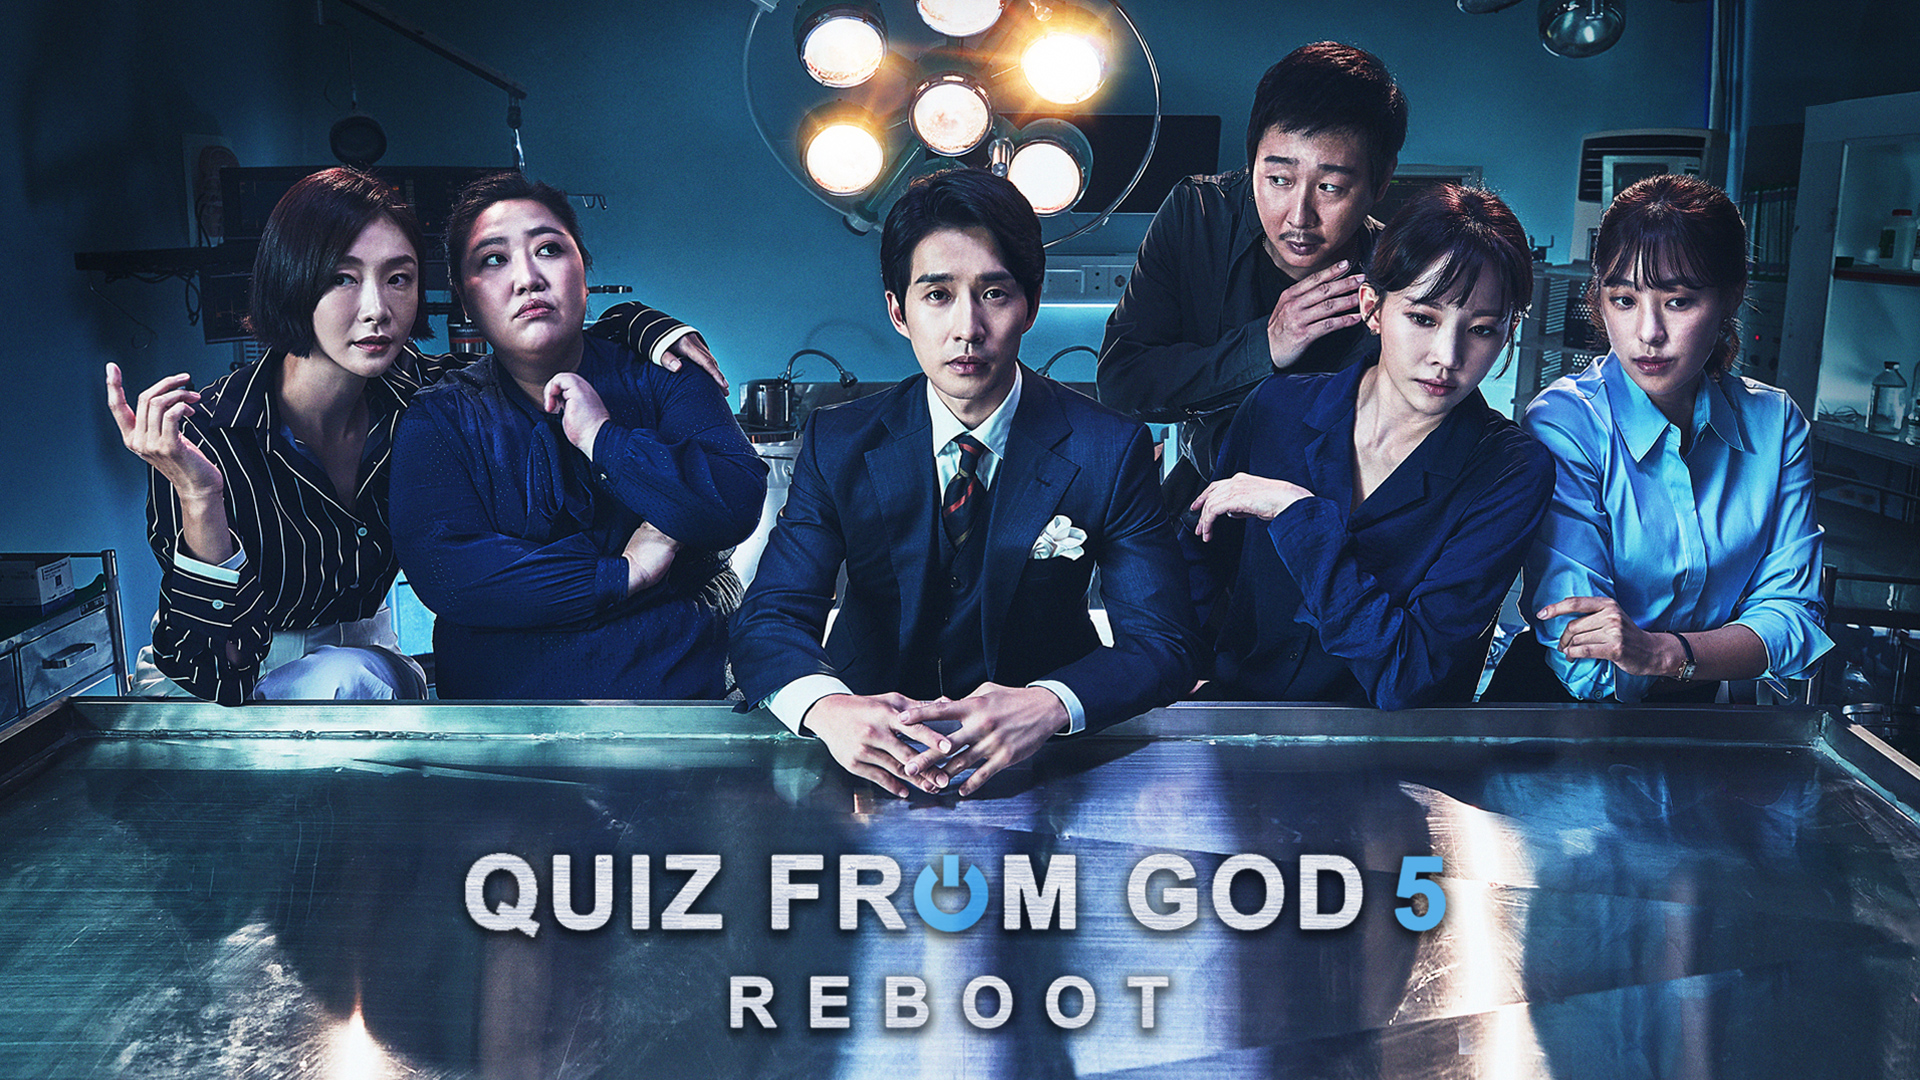 QUIZ FROM GOD 5: REBOOT